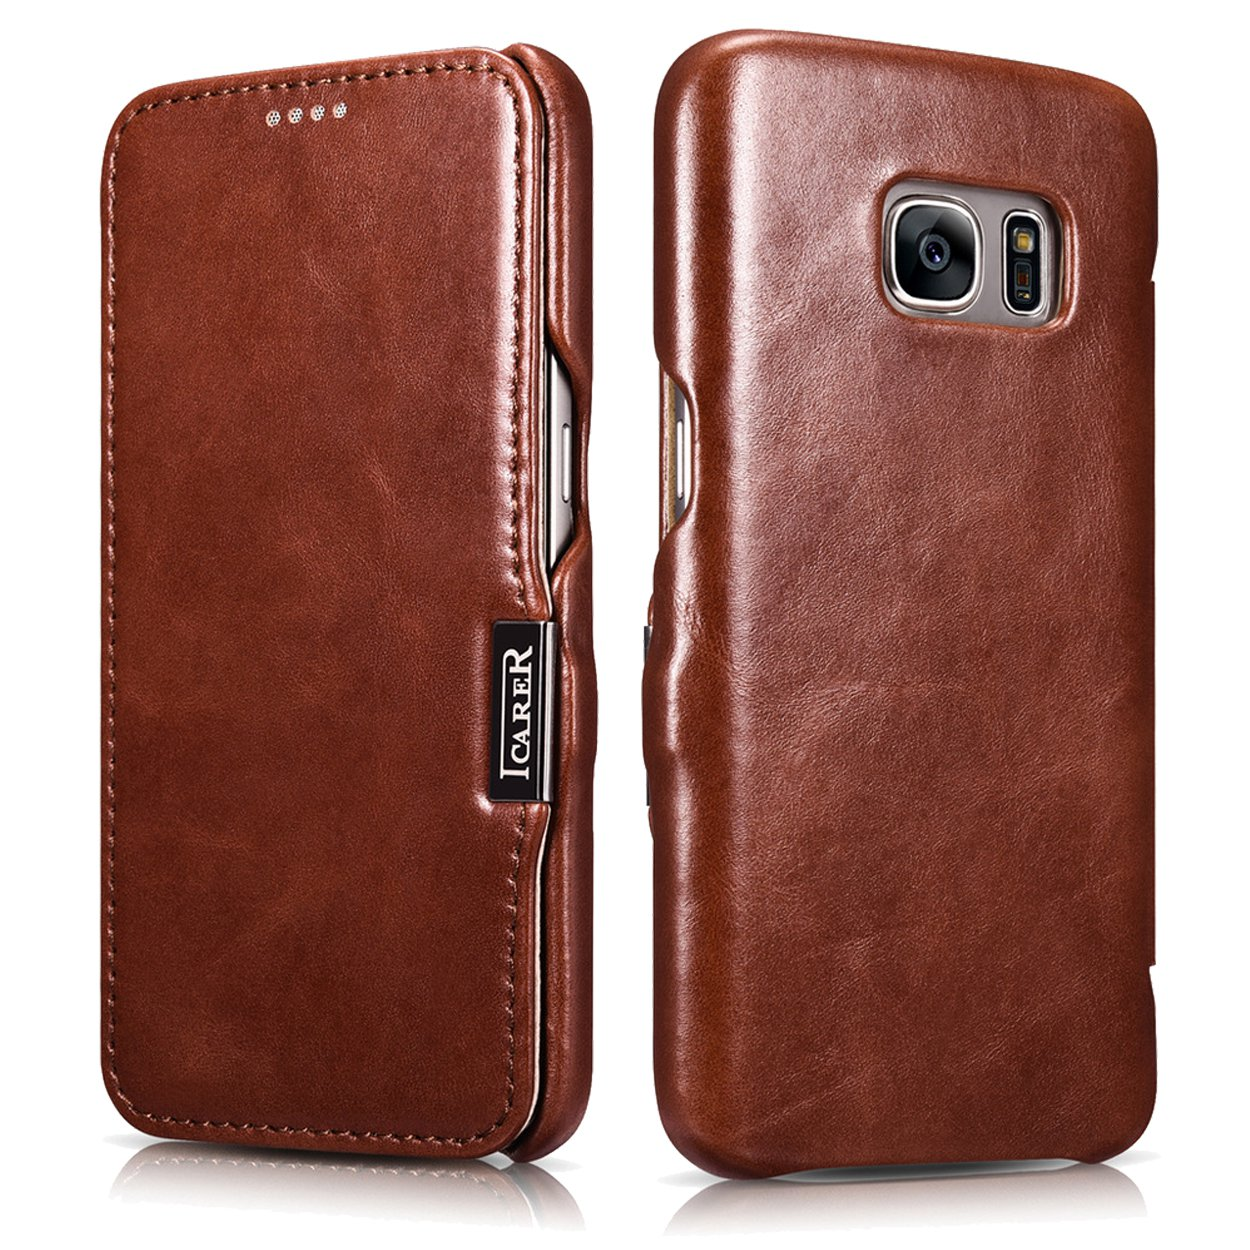 ICARER Genuine Leather Vintage Magnetic Closure Flip Folio Protective Case for Samsung Galaxy S7